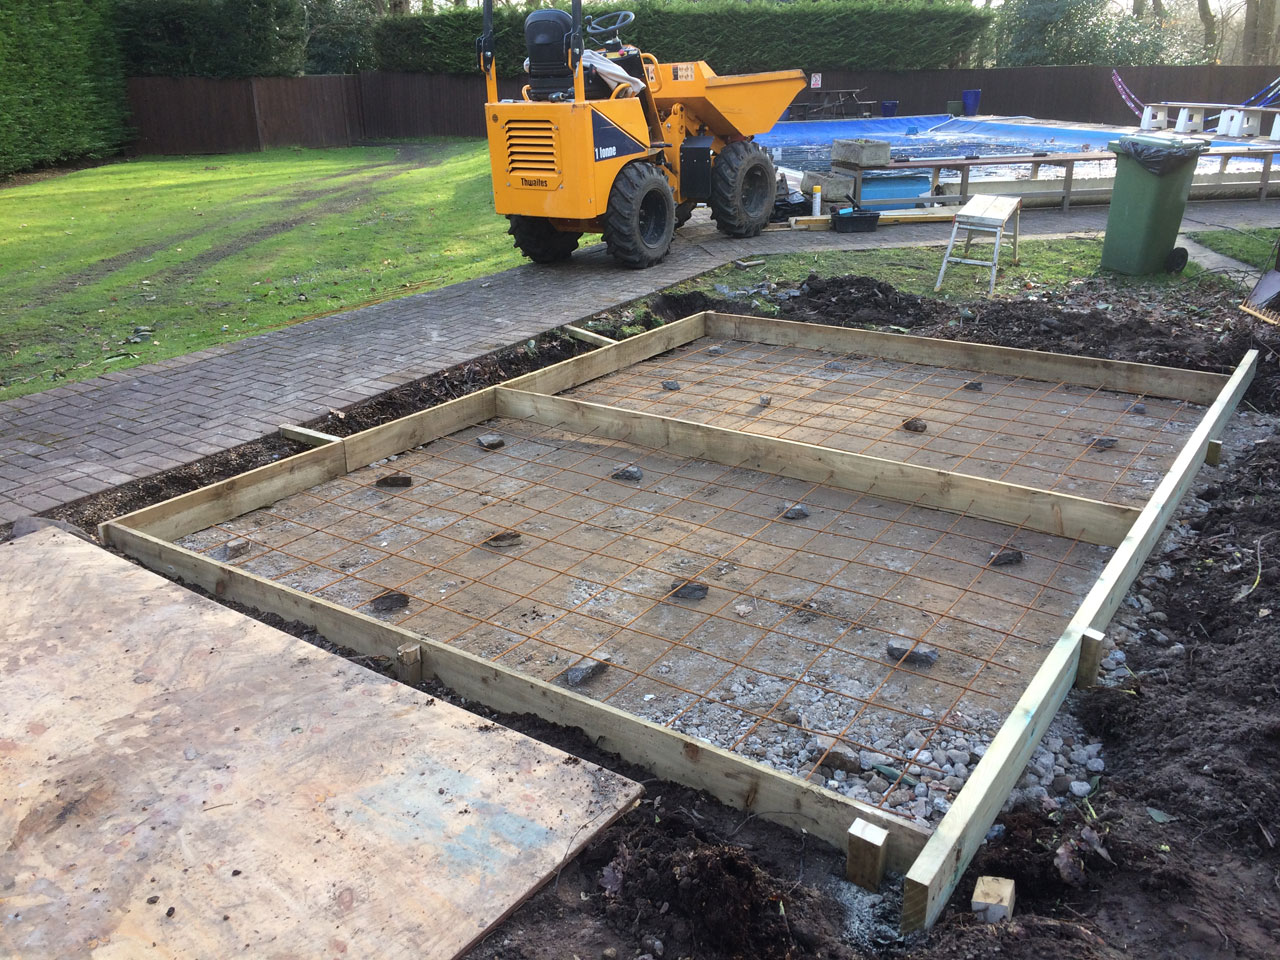 Foundations Berkshire Hampshire Surrey - small foundations for sheds, equipment pads and outbuildings Berkshire Hampshire Surrey